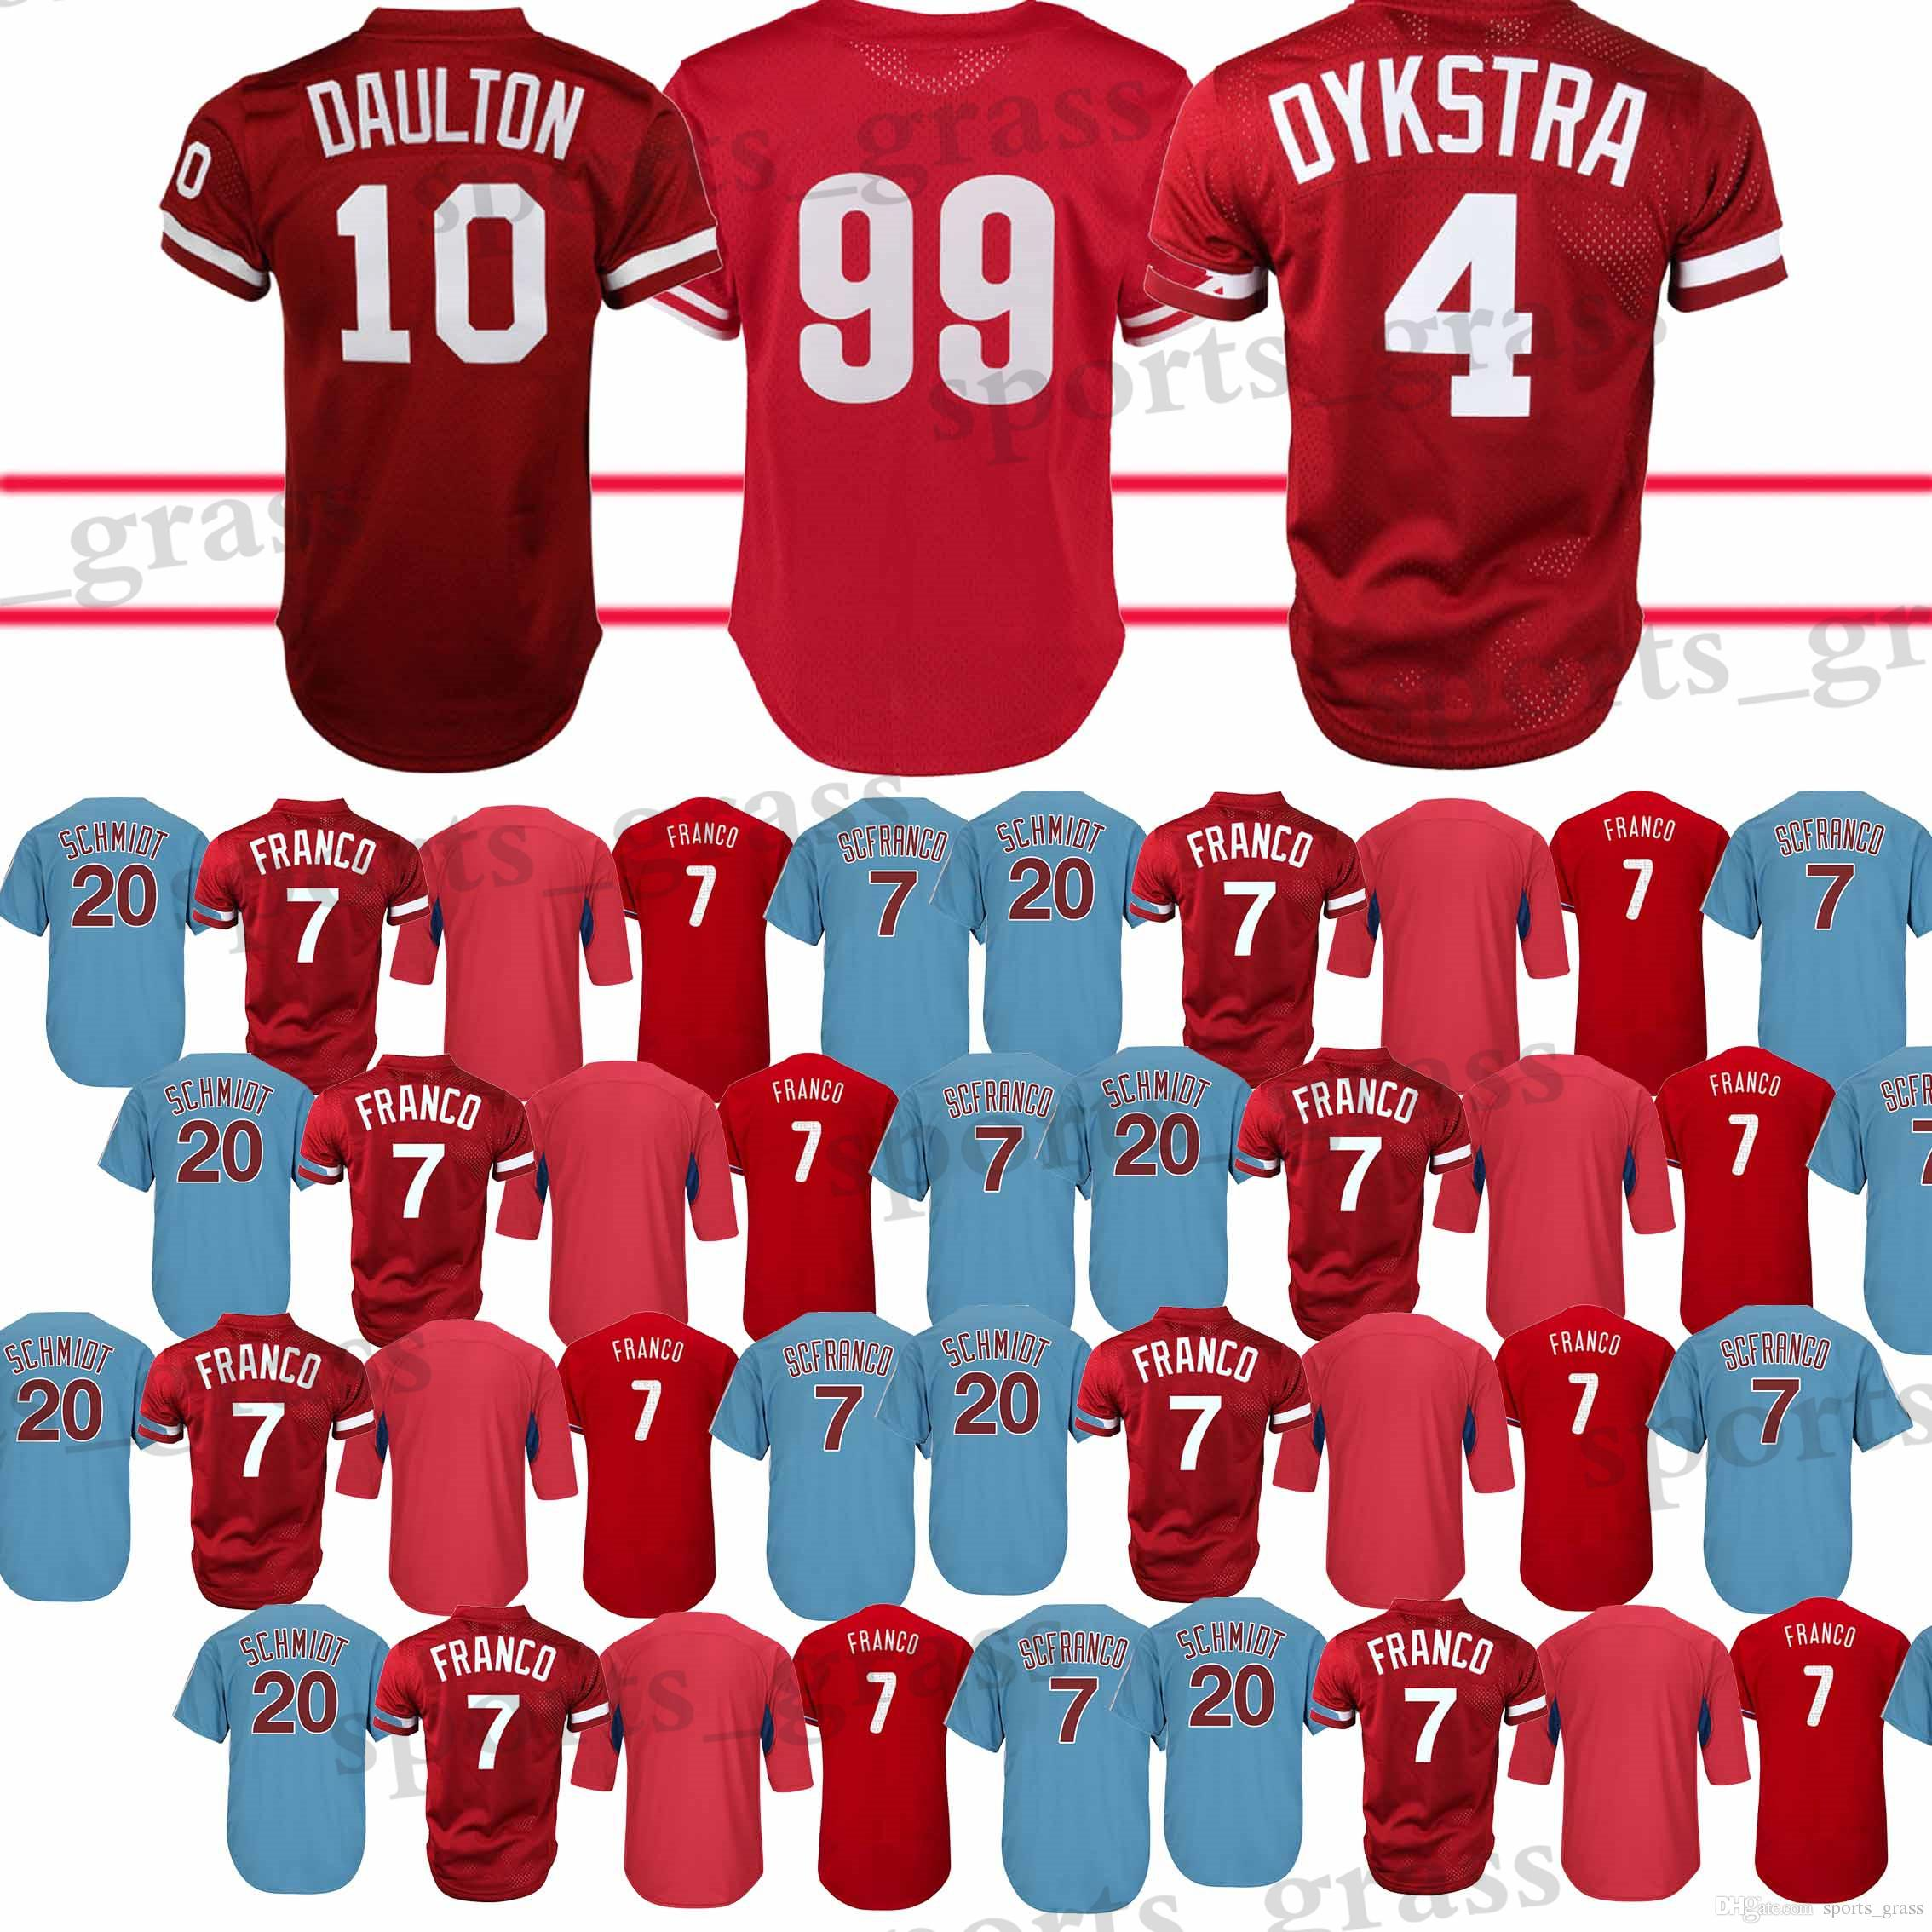 2019 Philadelphia Phillies Jersey 99 Mitch Williams 10 Darren Daulton 4  Lenny 7 Maikel Franco Jerseys Adult Shirt 2018 Top Quality From  Sports grass 742703fb205